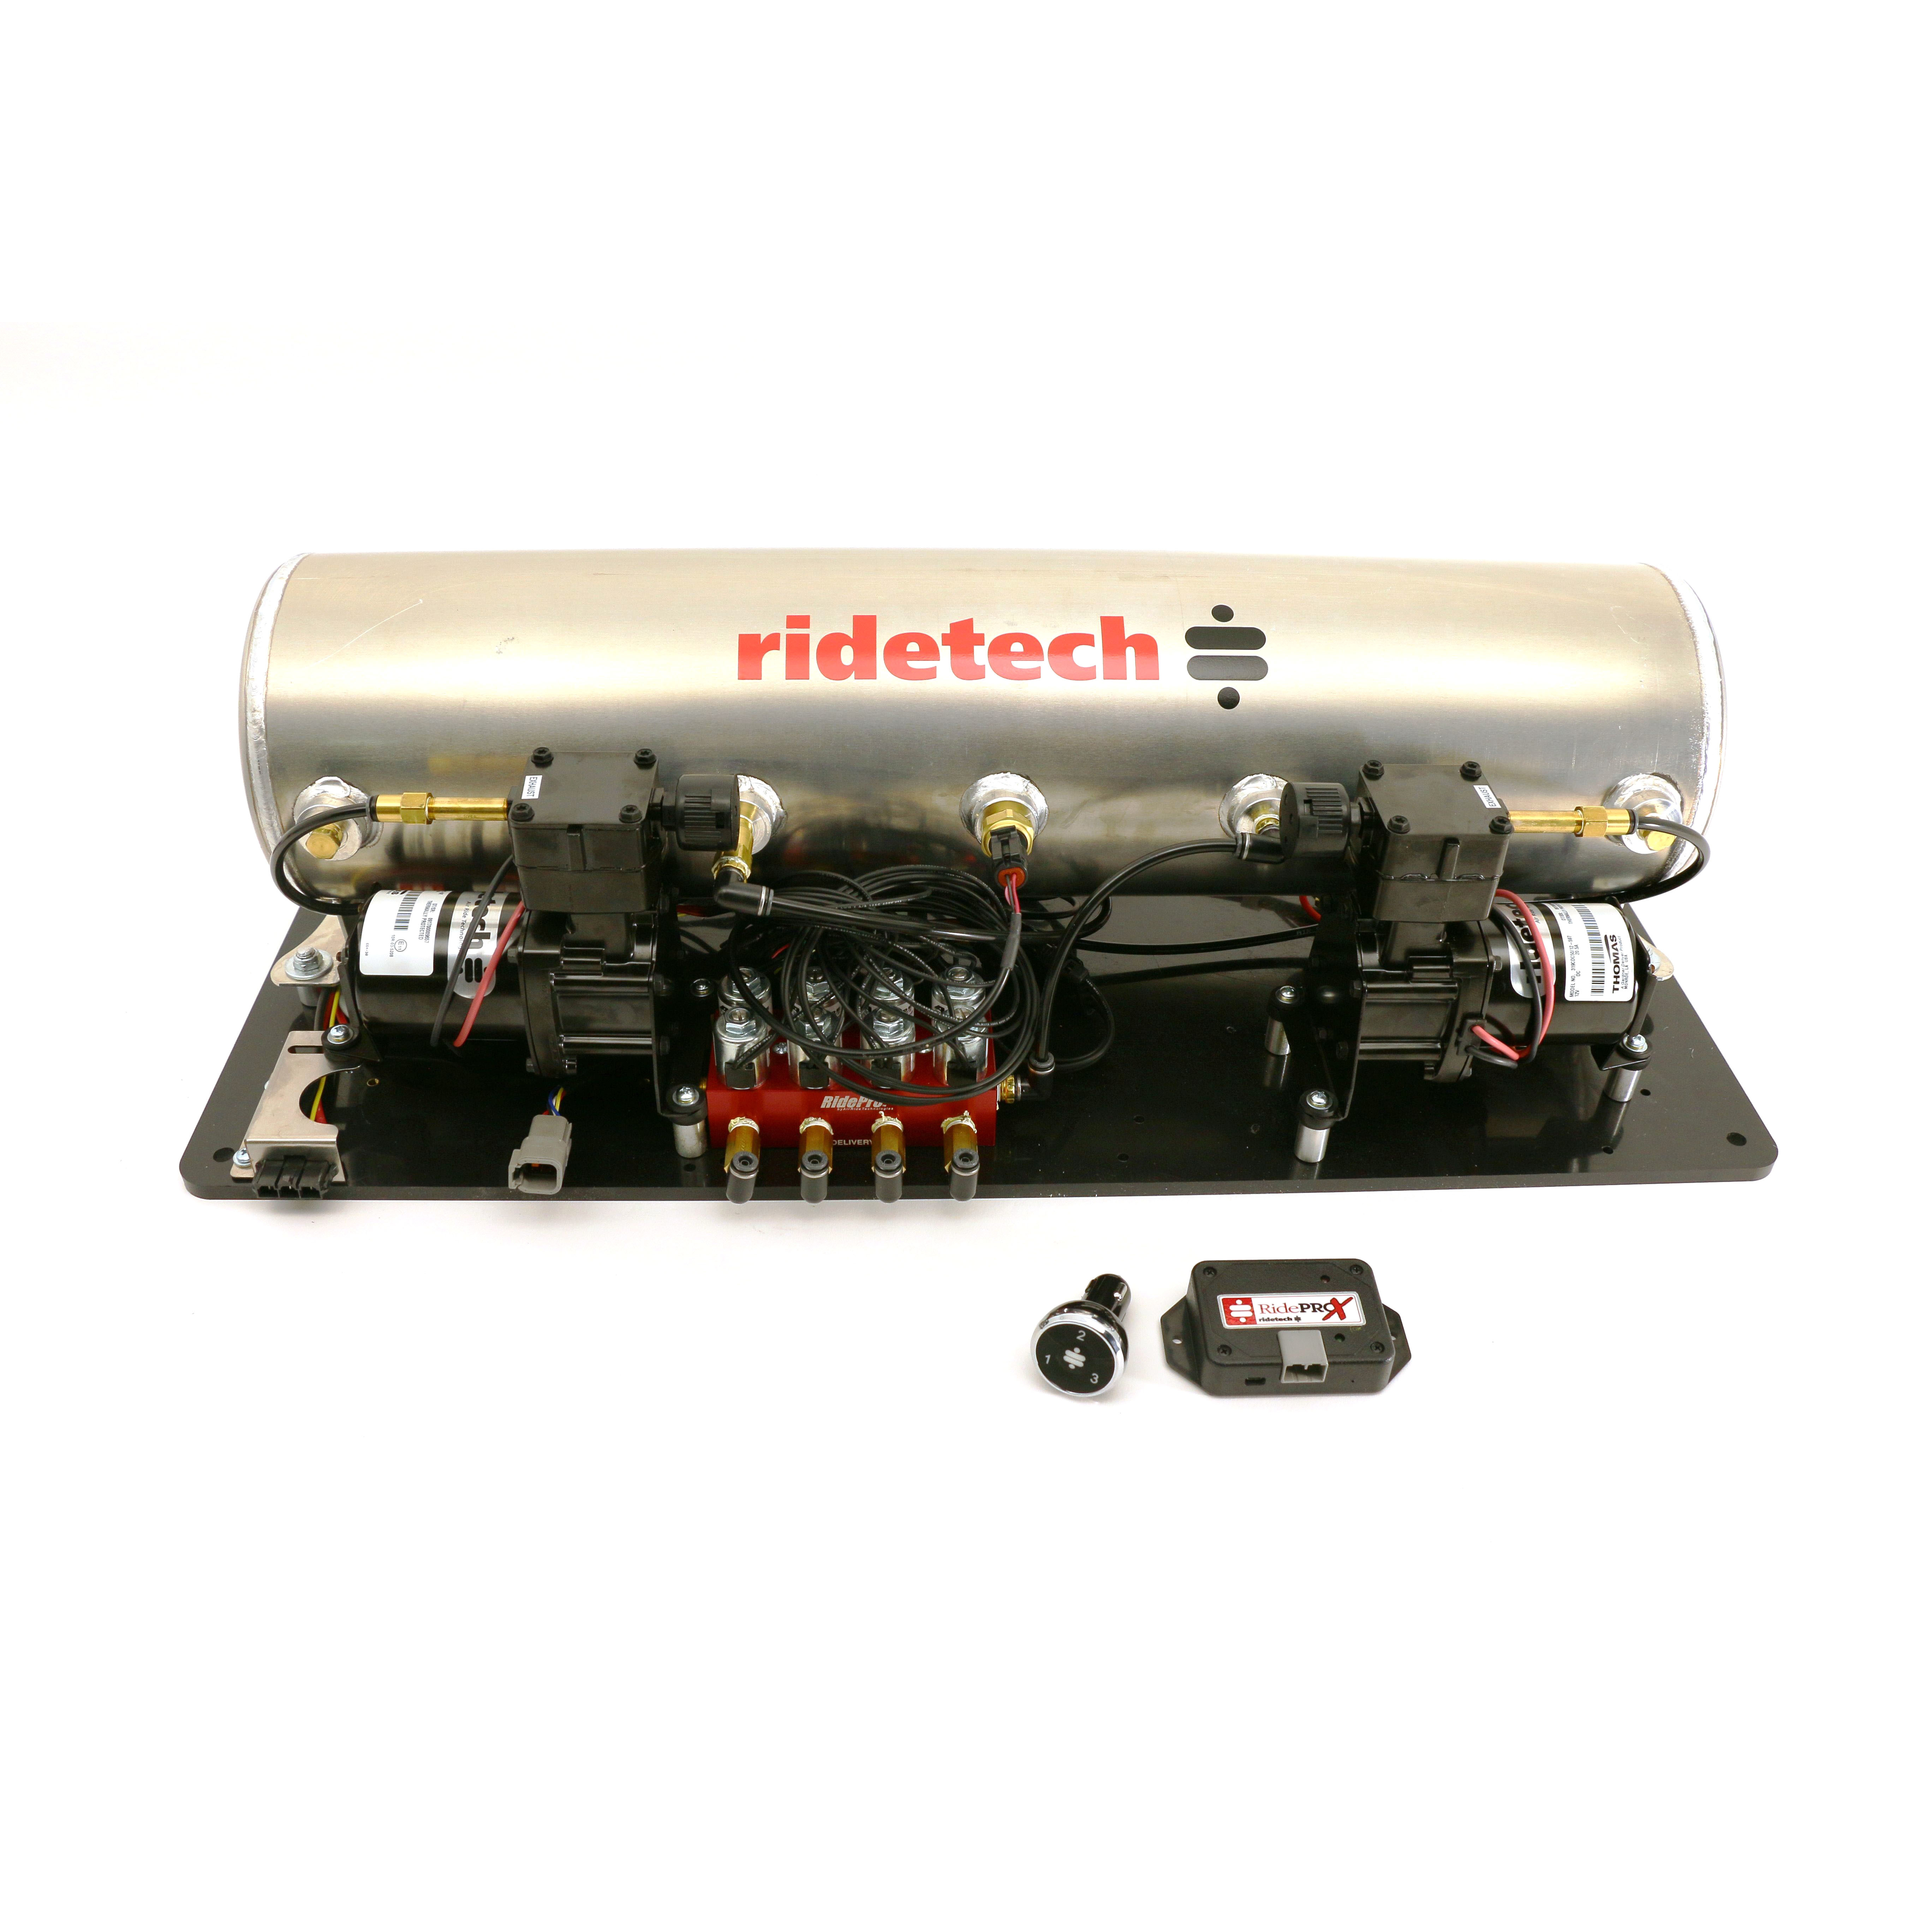 Ridetech 30414100 Air Compressor, AirPod, Suspension, 5 gal, 150 psi Max, 12V, Digital 4 Corner Gauge, Controls / Fittings / Lines / Tank, Ridetech Air Spring Kits, Kit